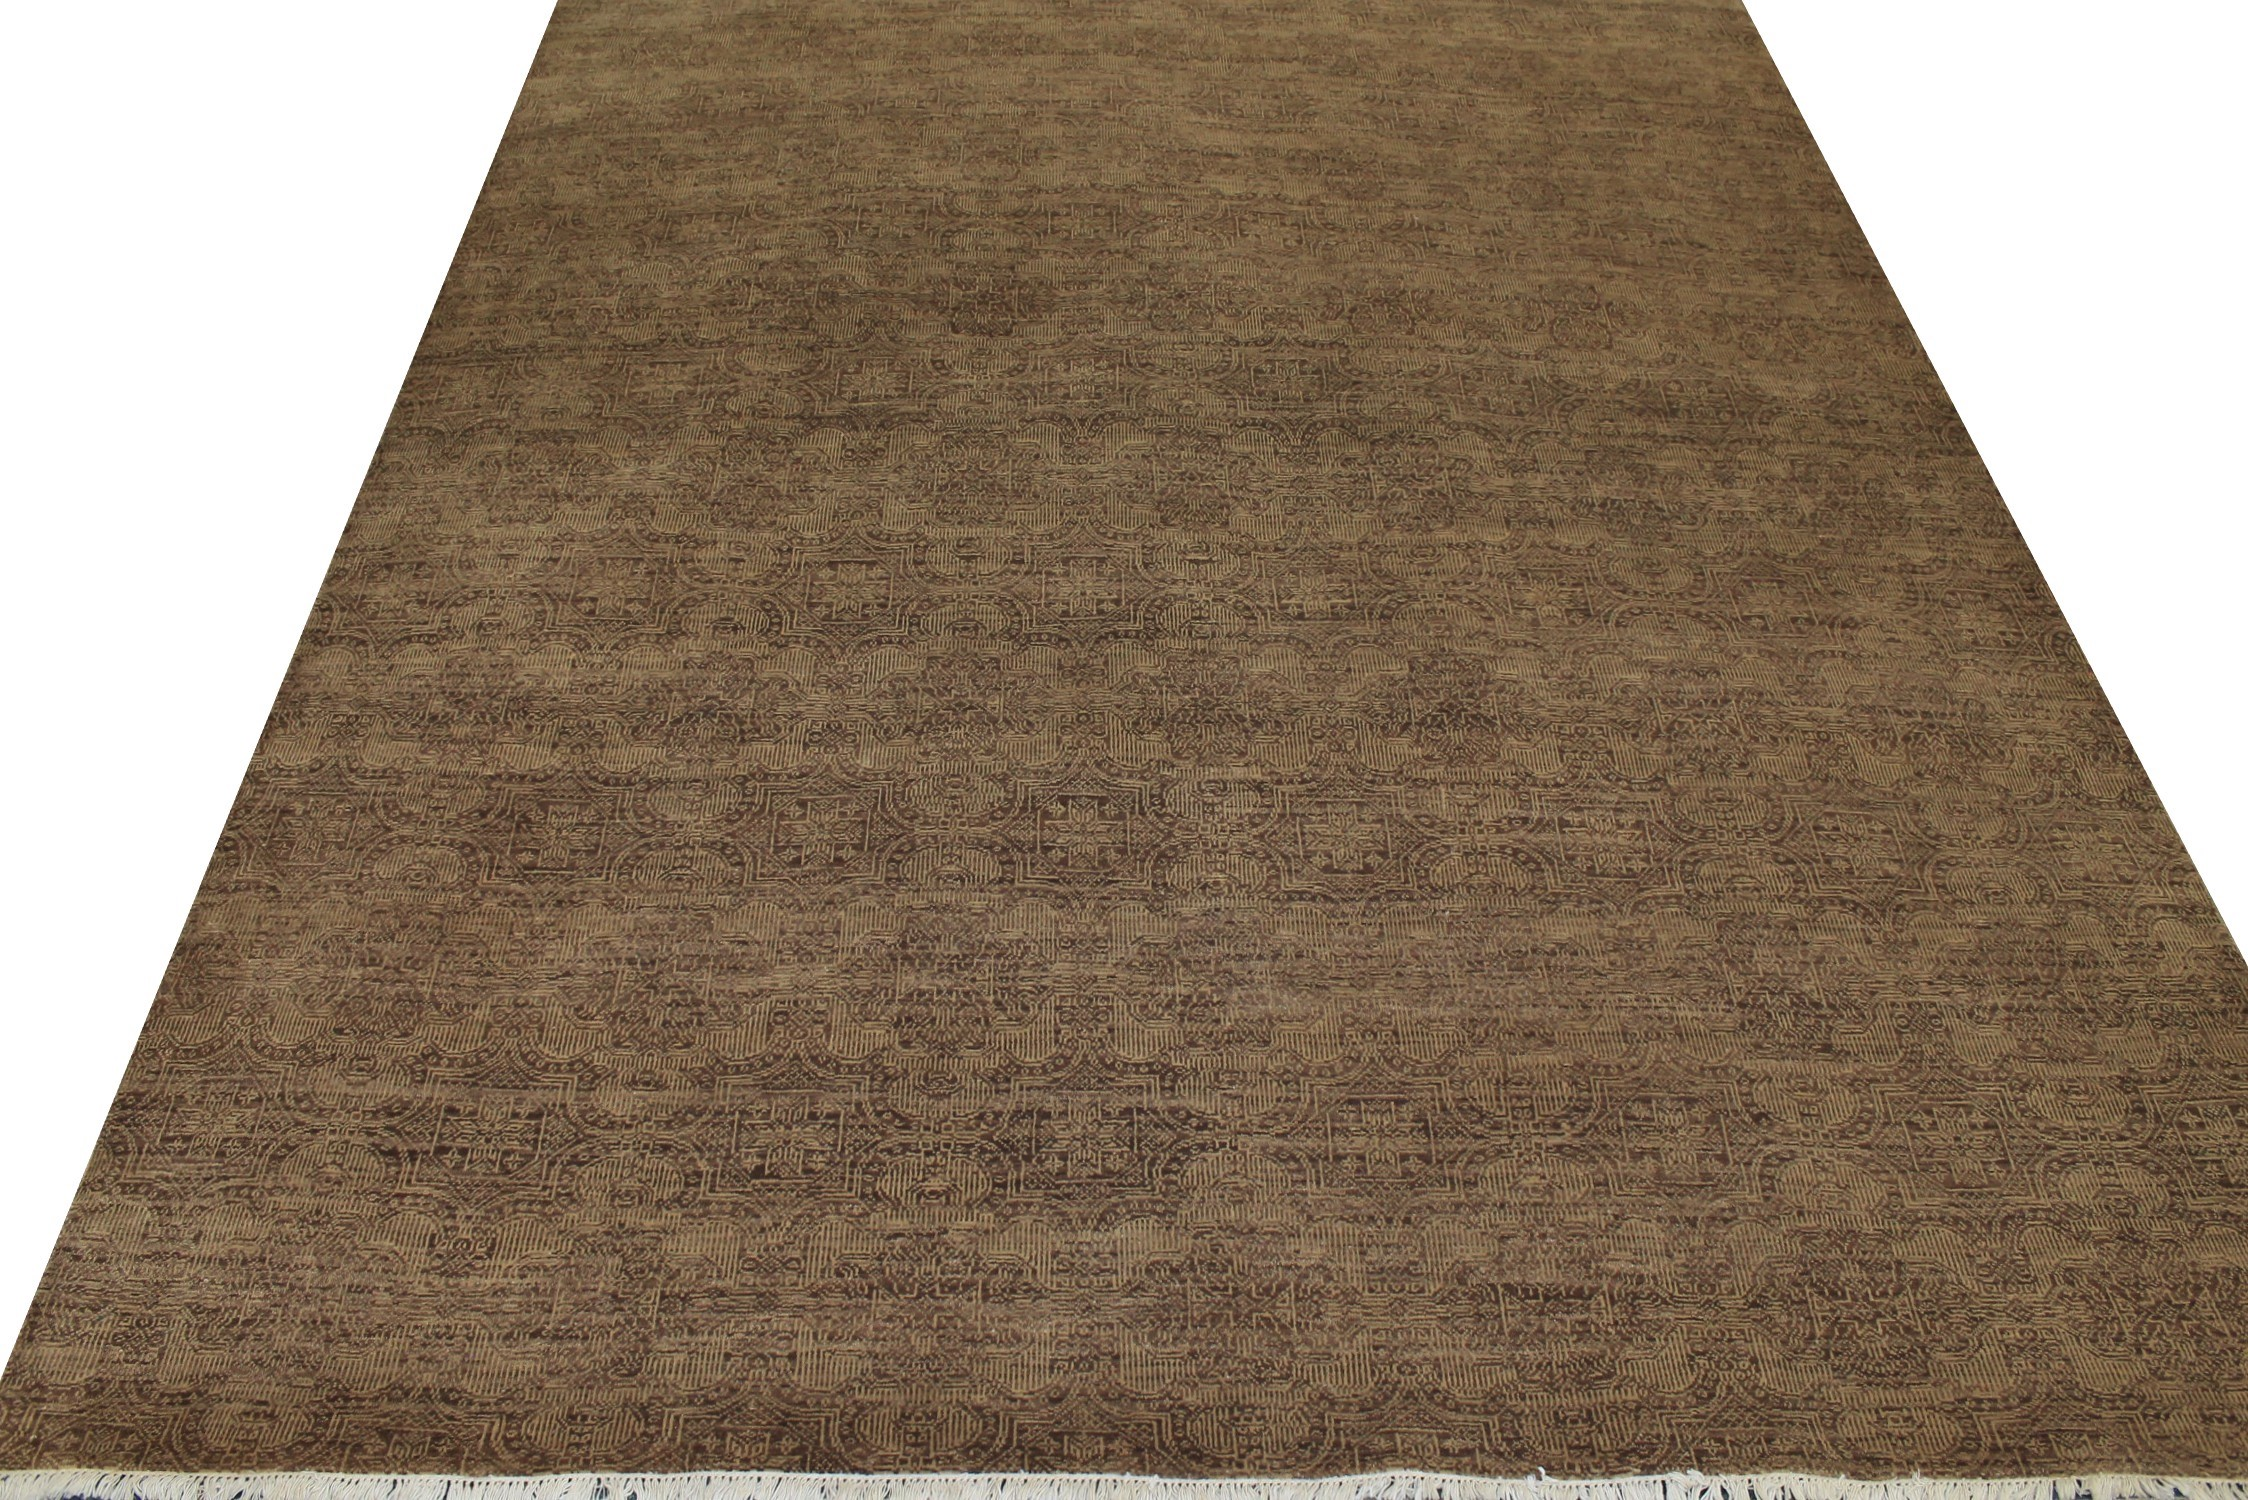 8x10 Contemporary Hand Knotted Wool Area Rug - MR11577